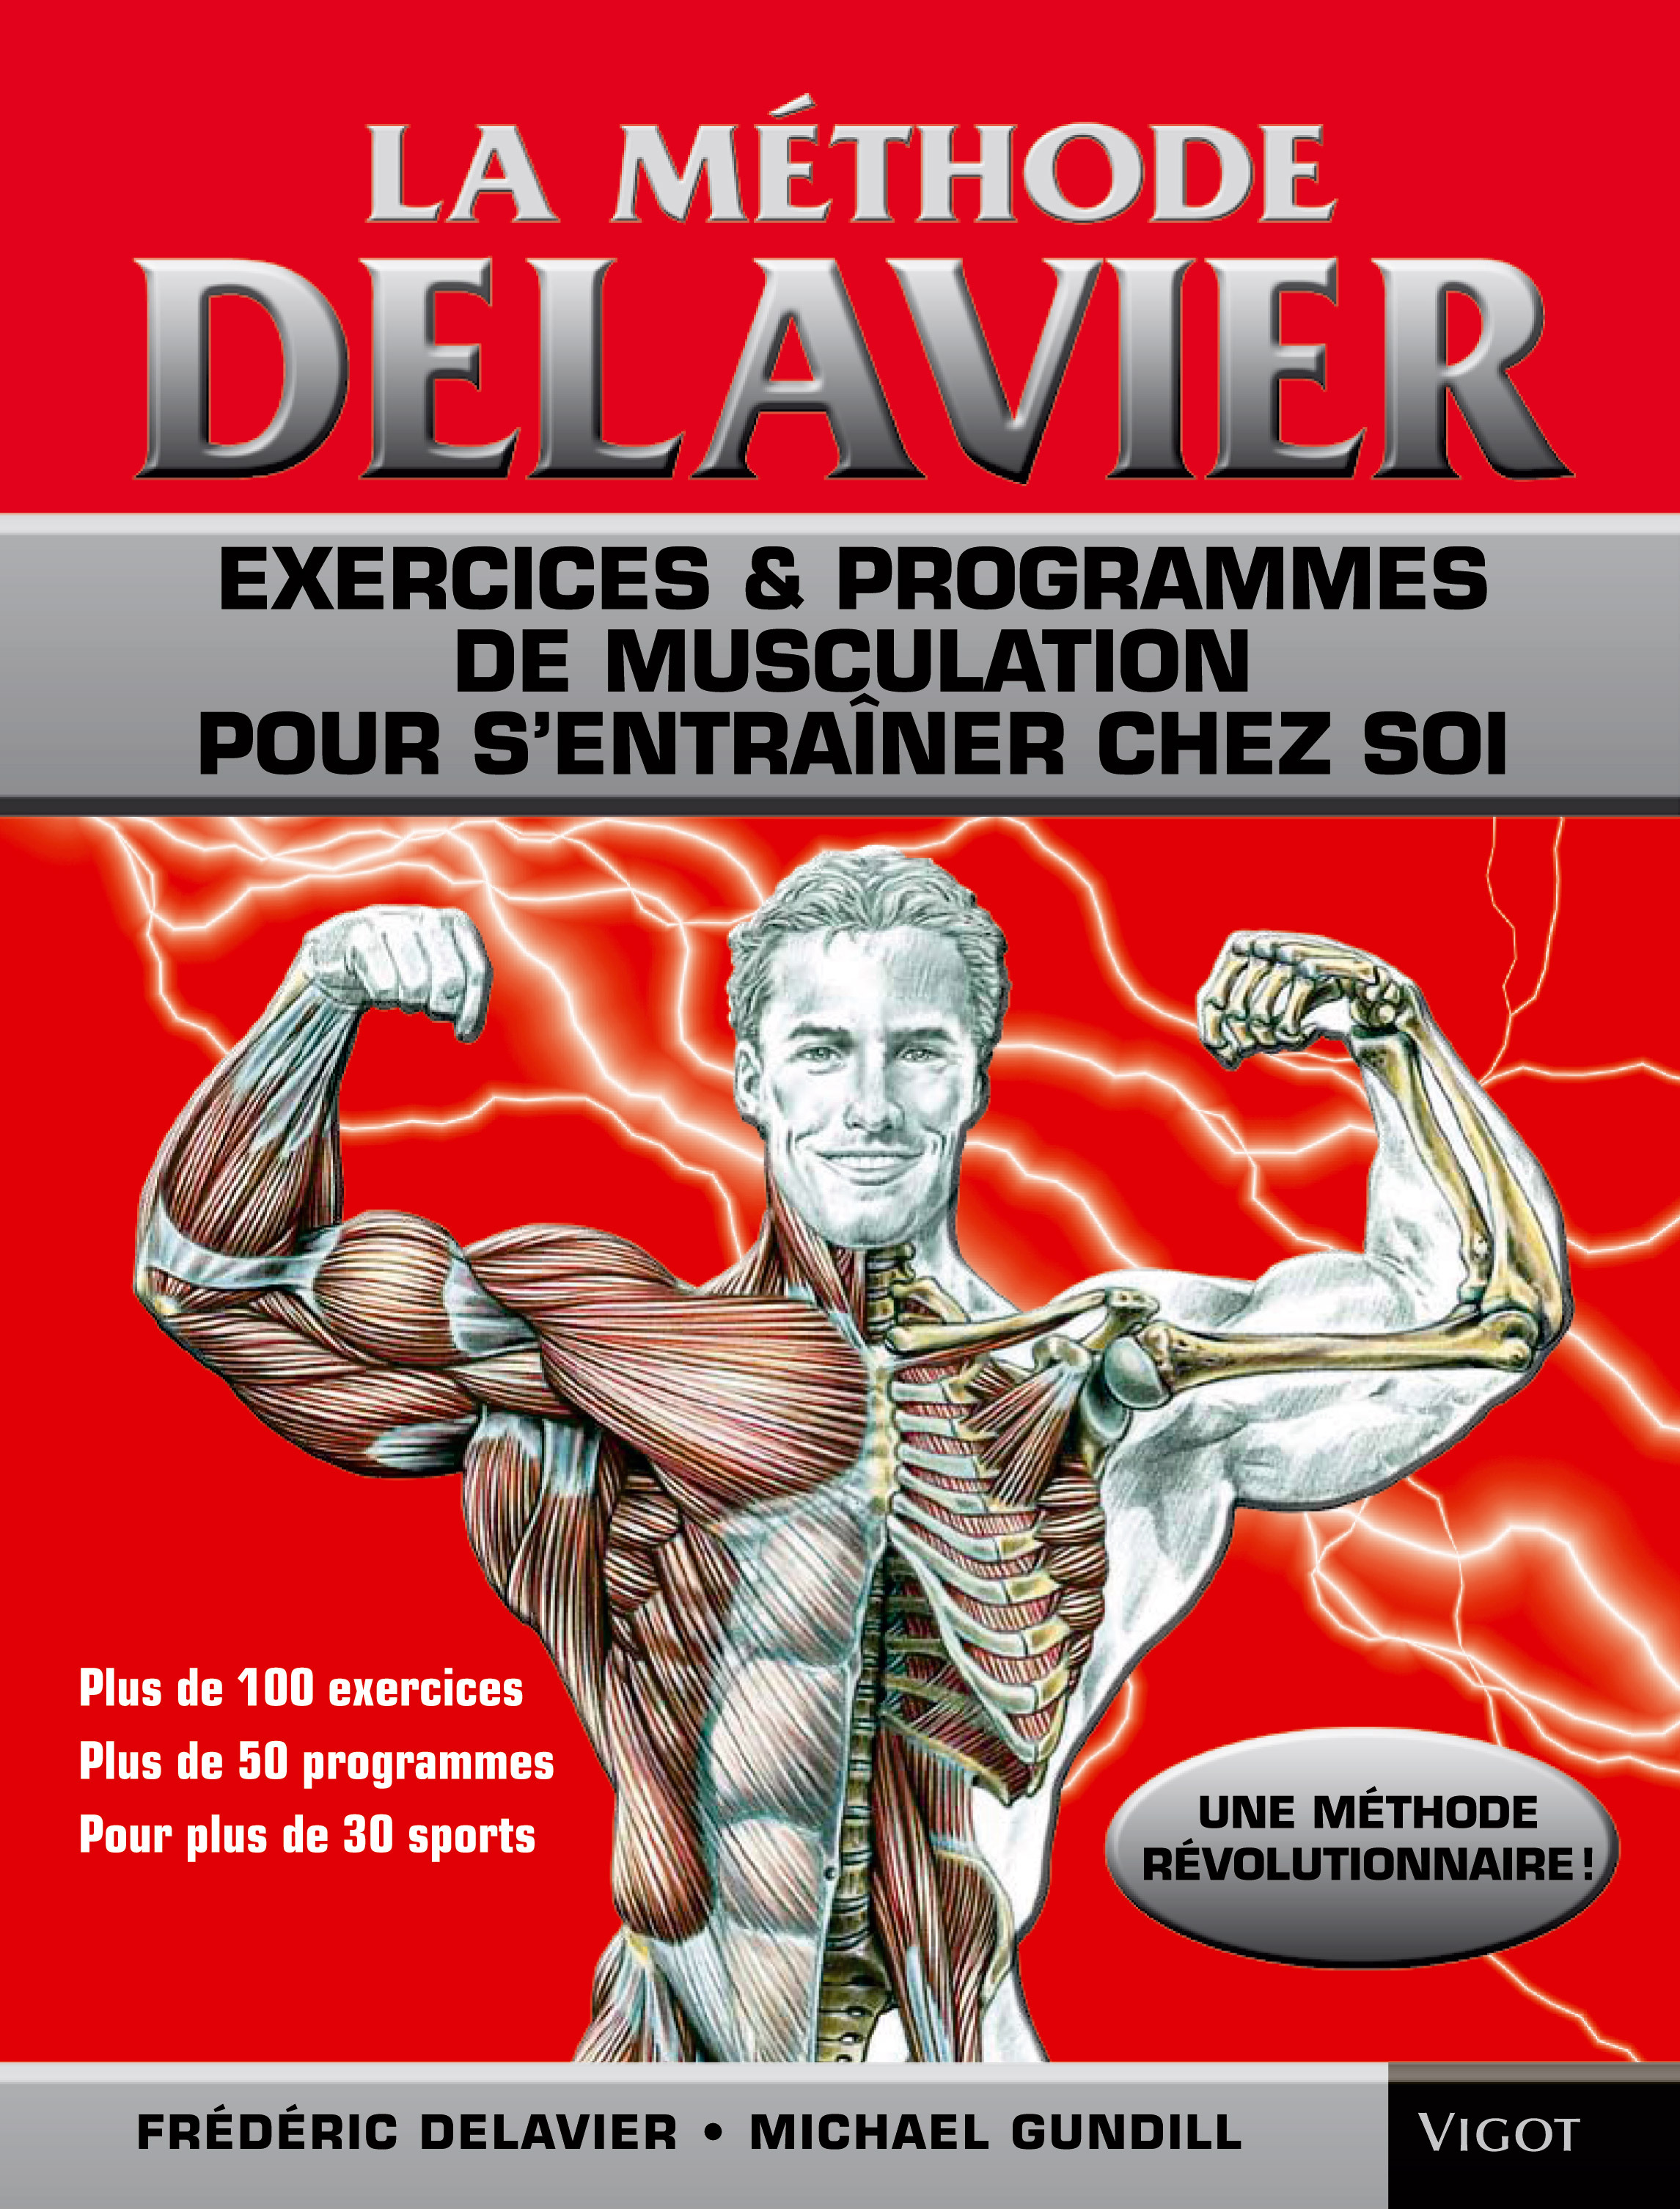 LA METHODE DELAVIER DE MUSCULATION